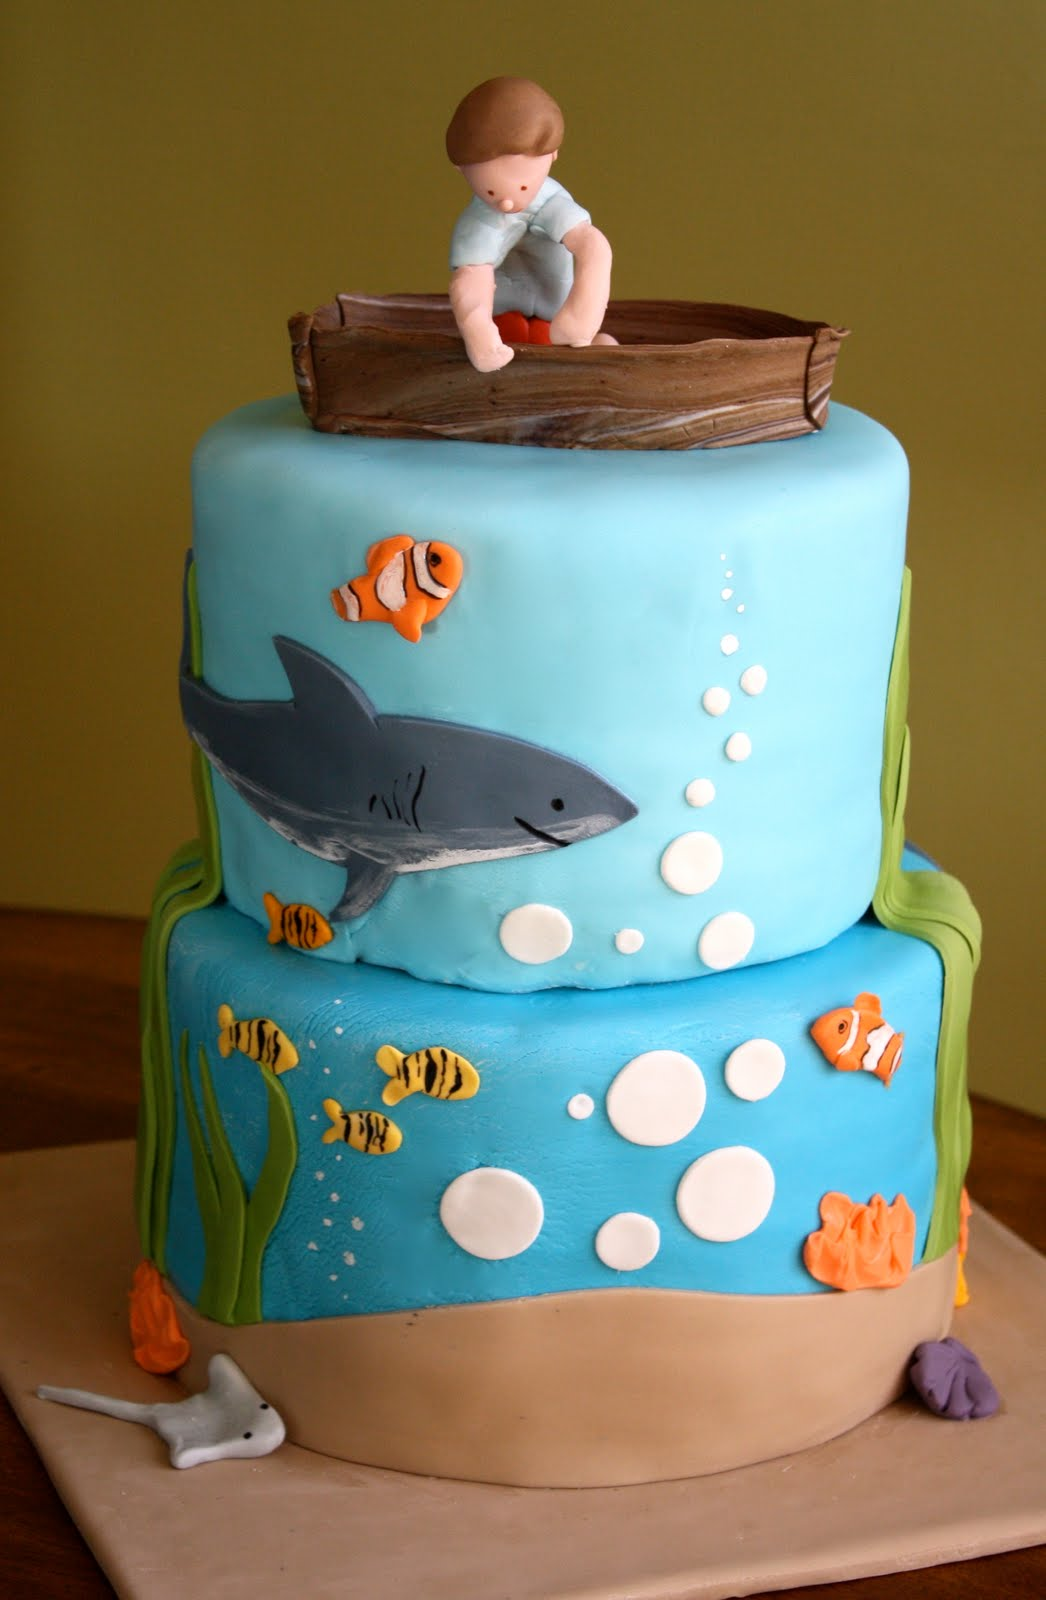 Design For Birthday Cake For Boy : Baker s Cakes: Under the Sea Birthday Cake!